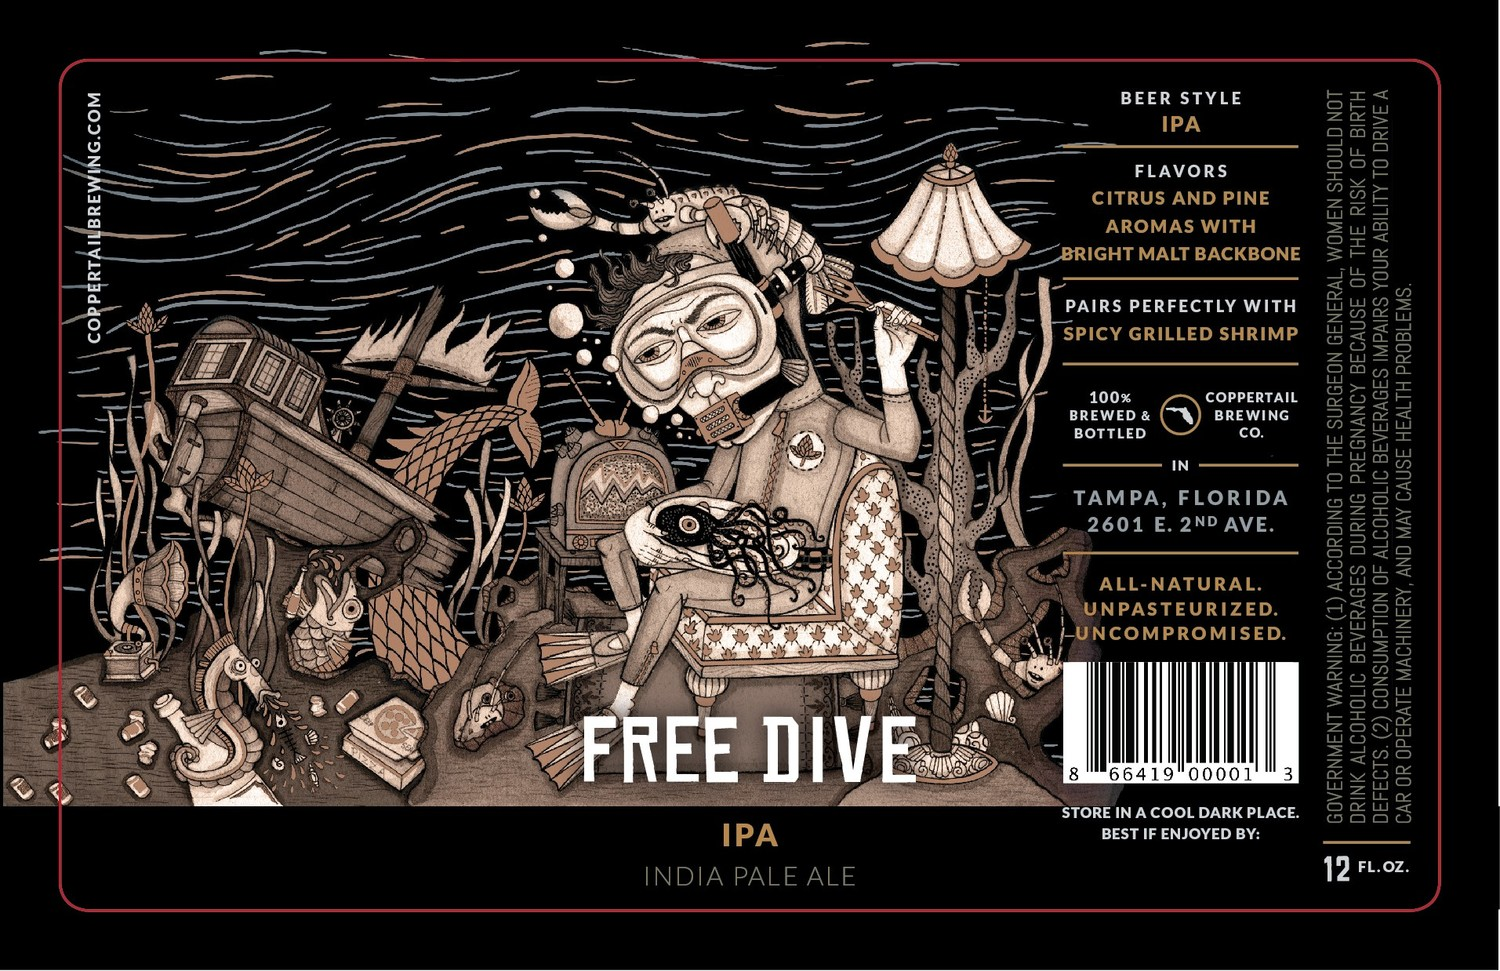 Label Sneak Peek Unholy Trippel And Free Dive Ipa Coppertail Brewing Co